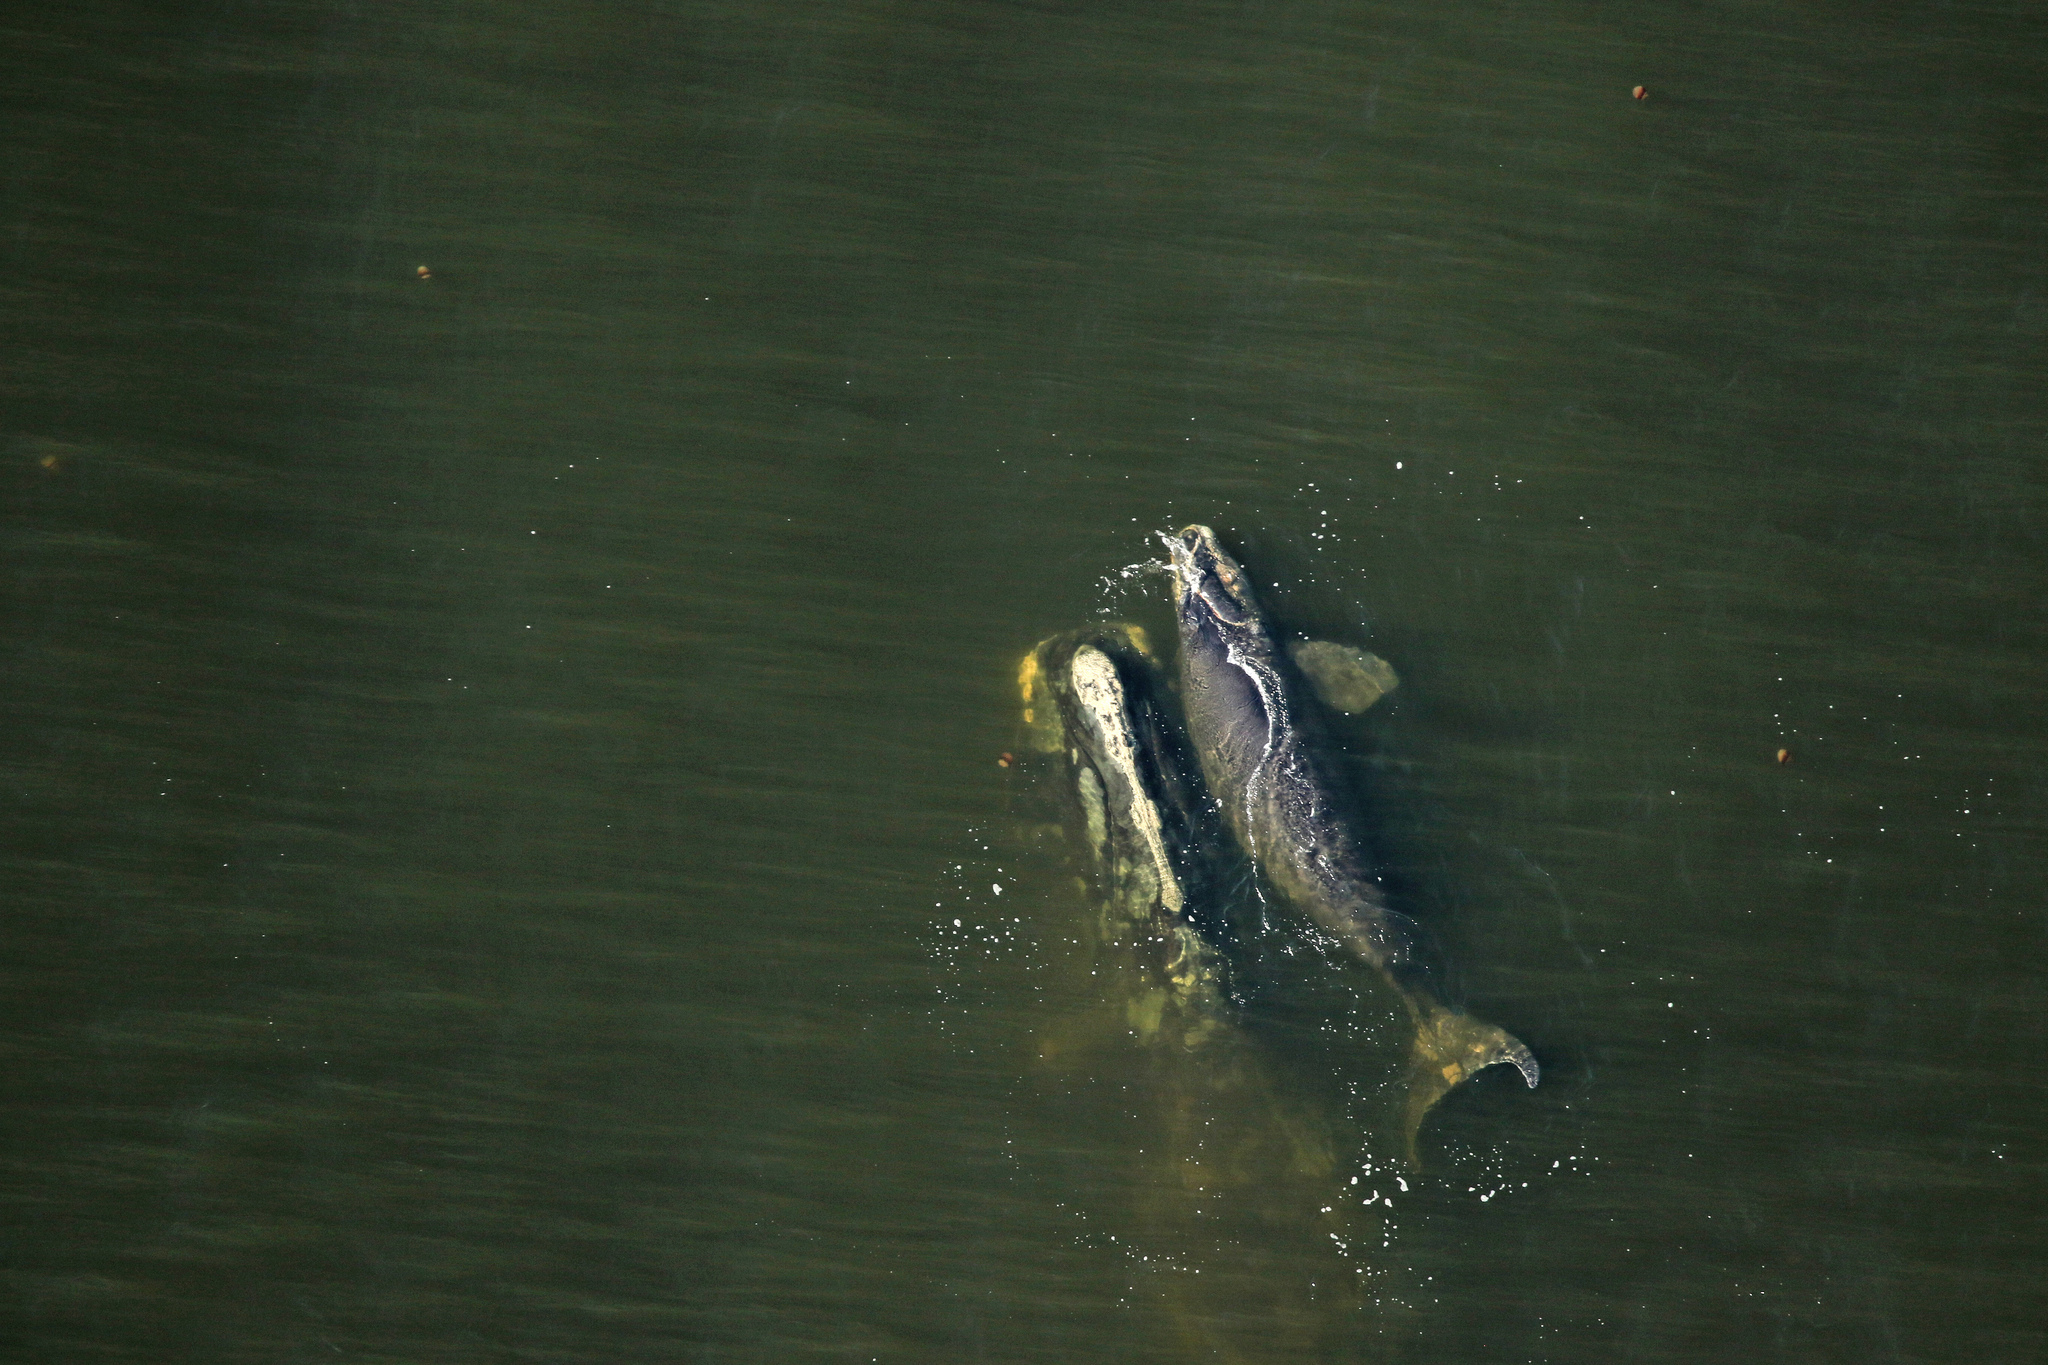 north atlantic right whale number 1204 swims with her calf near amelia island off the coast of florida